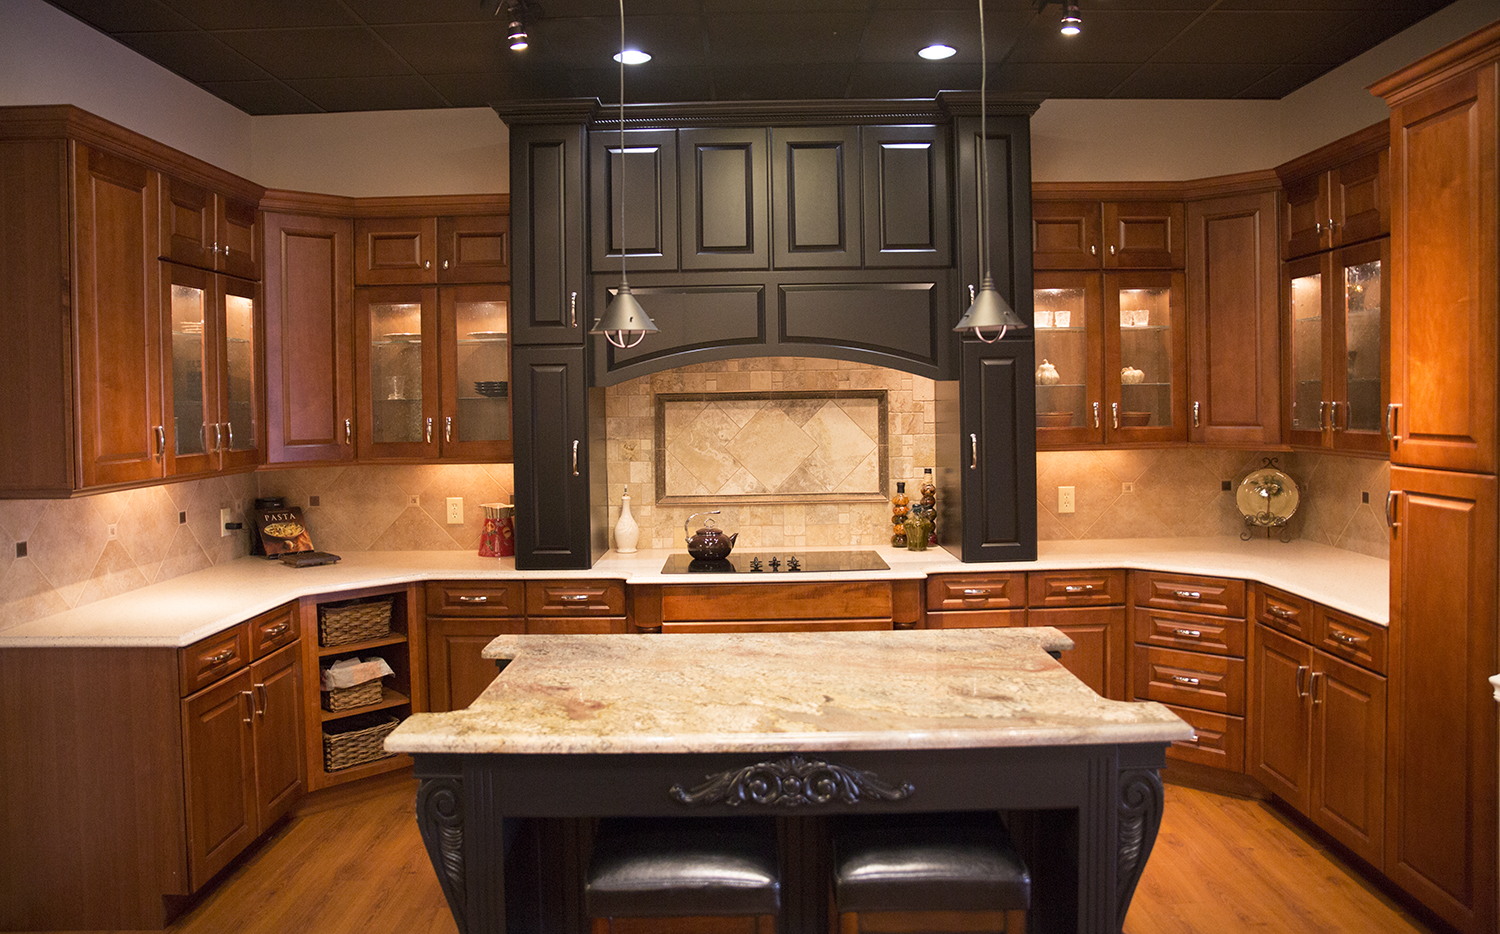 Marsh Kitchen Cabinets Marsh Furniture Gallery Kitchen And Bath Remodel Custom